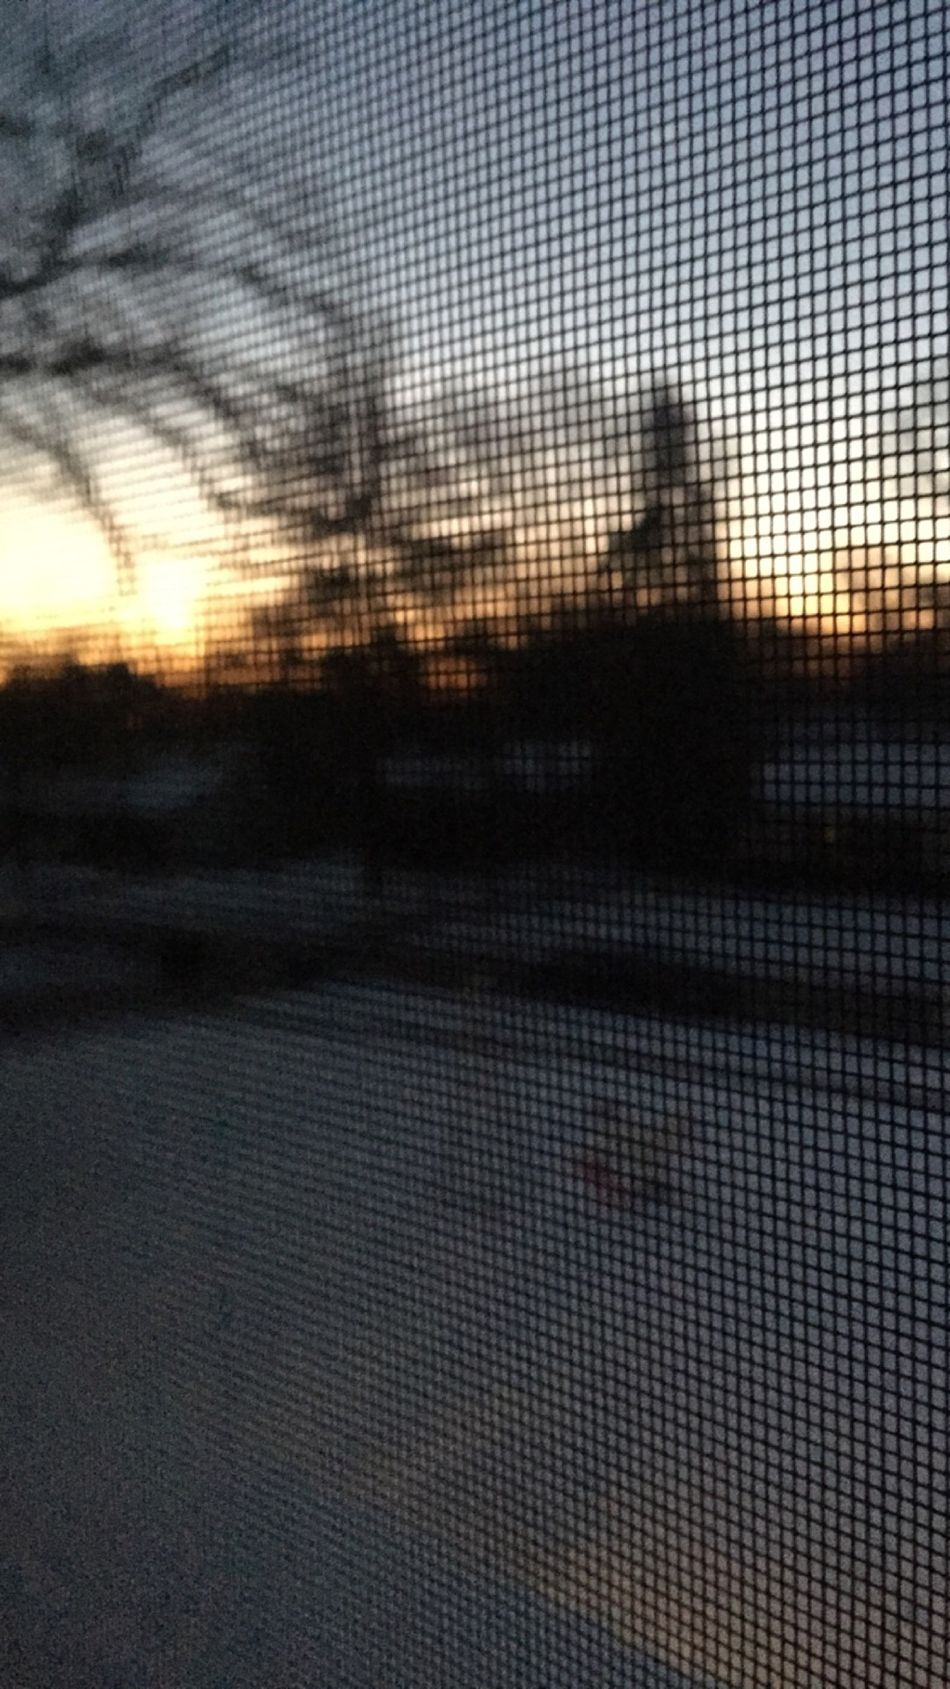 Sunrise Getting Inspired No Filter Beautiful Nature Nature_collection Behind The Screen